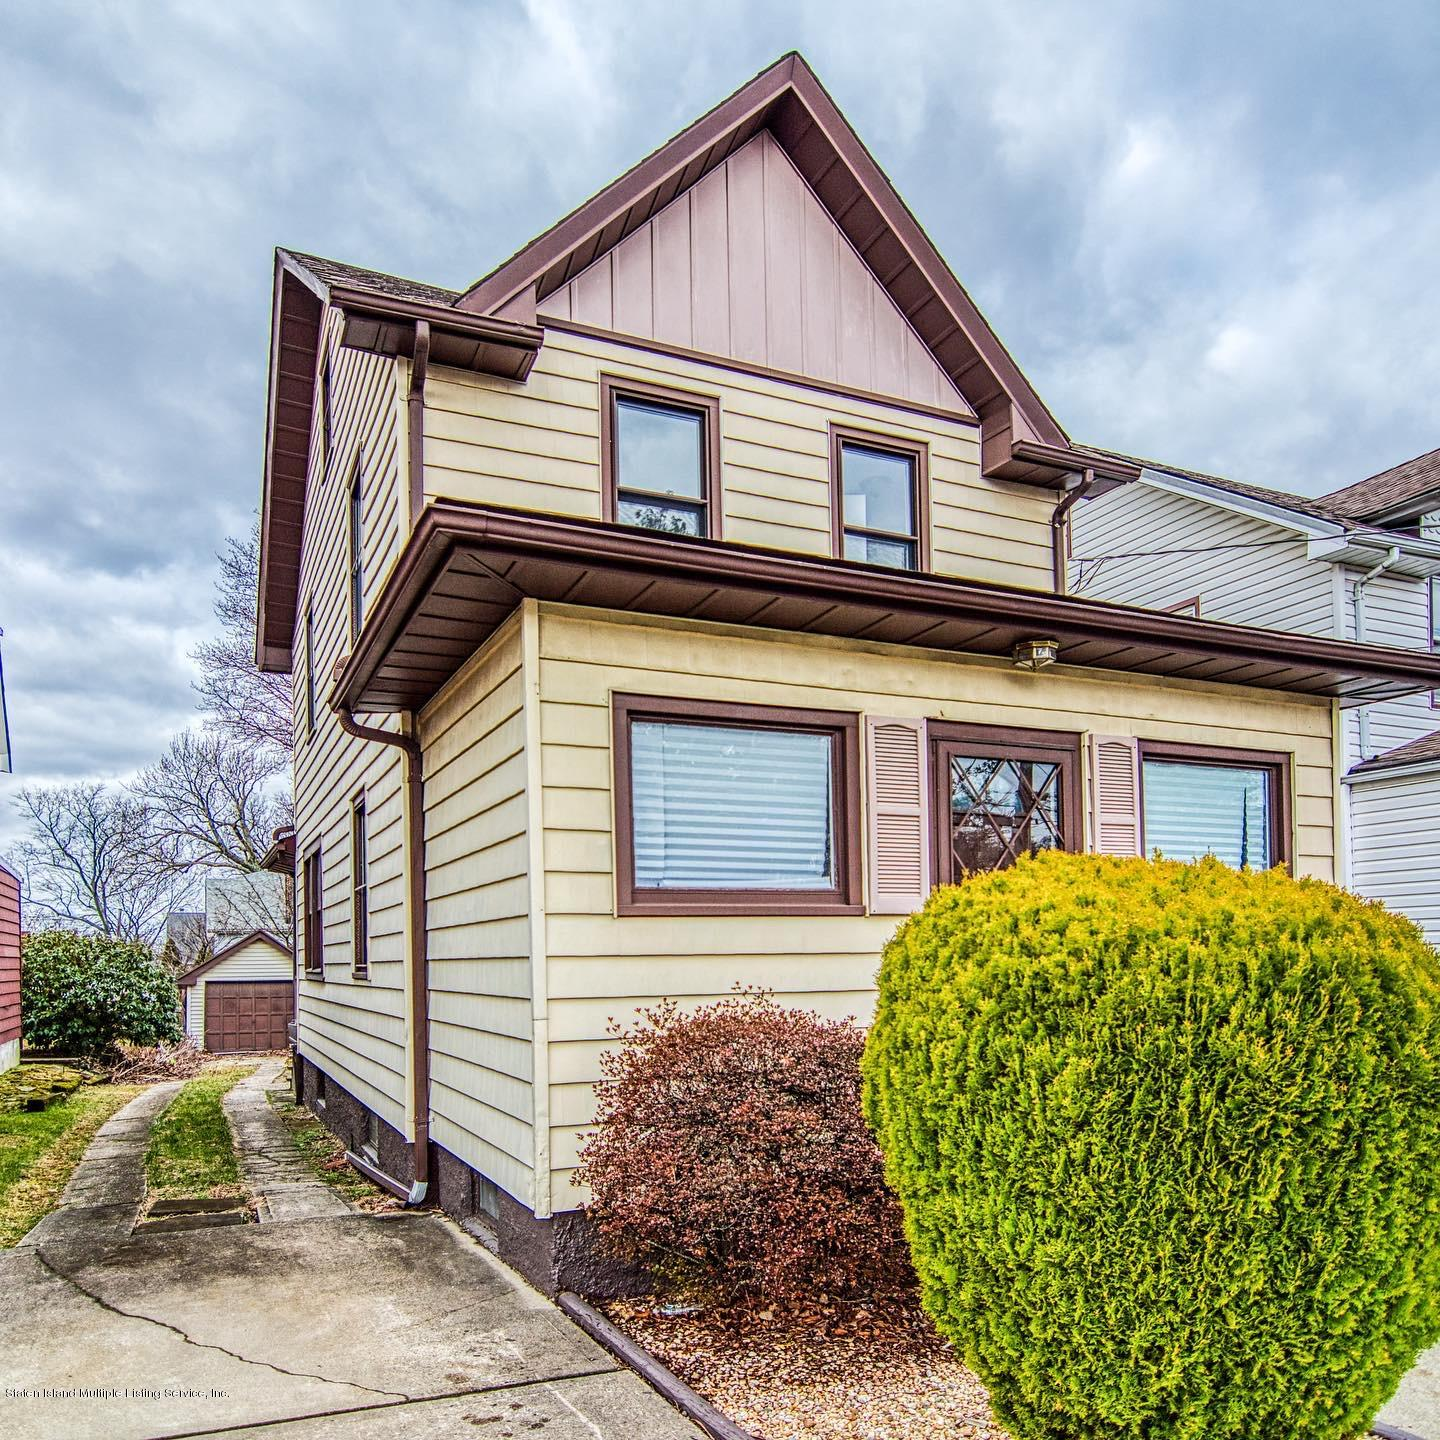 Single Family - Detached 54 Quinlan Avenue  Staten Island, NY 10314, MLS-1135997-3